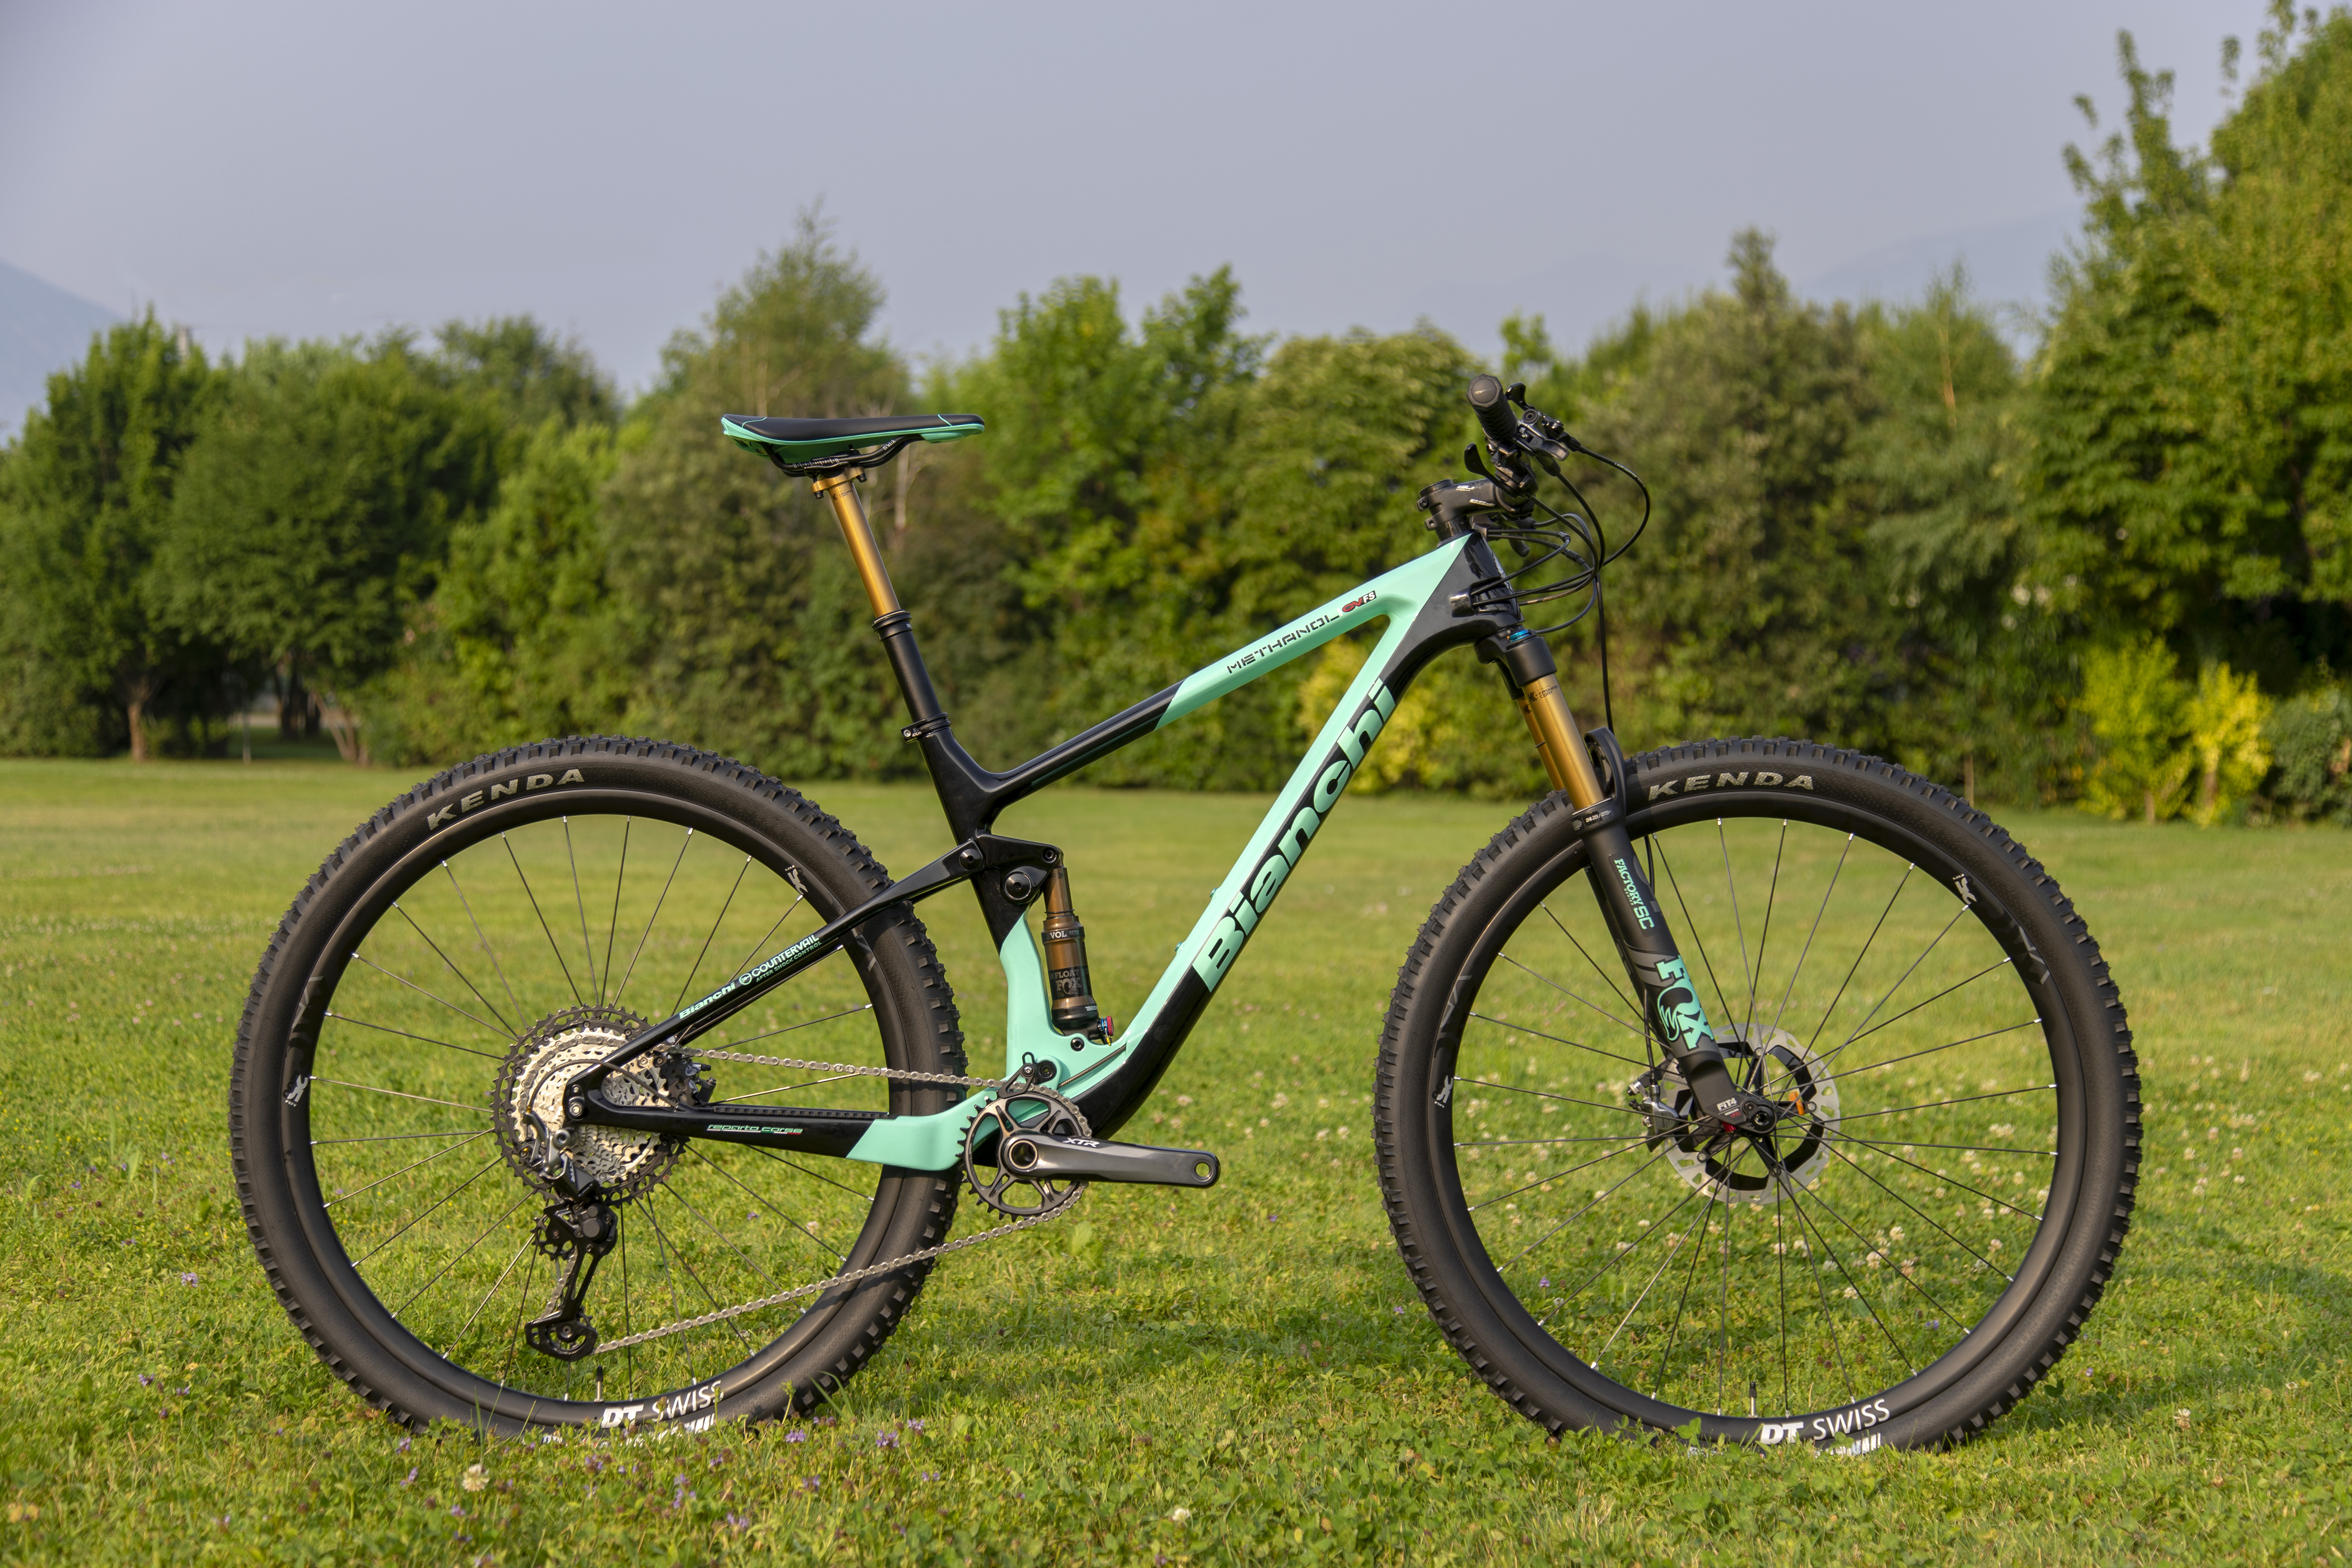 The New Bianchi Methanol CV FS Mountain Bike Rips in With XC and Trail Builds - Singletracks Mountain Bike News